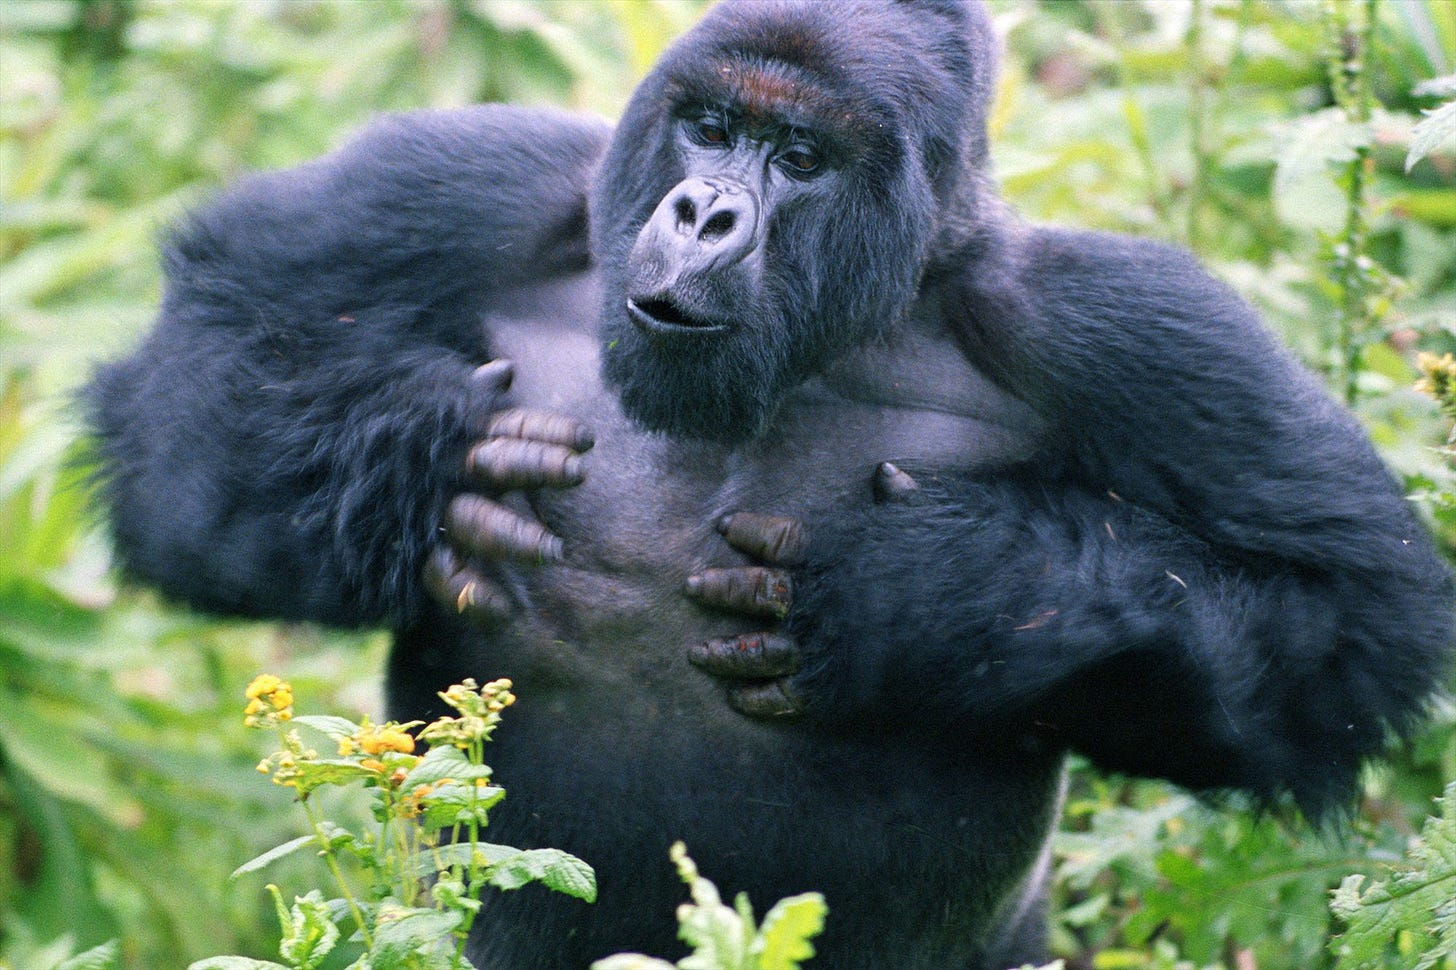 The shocking, real reason why gorillas pound their chests